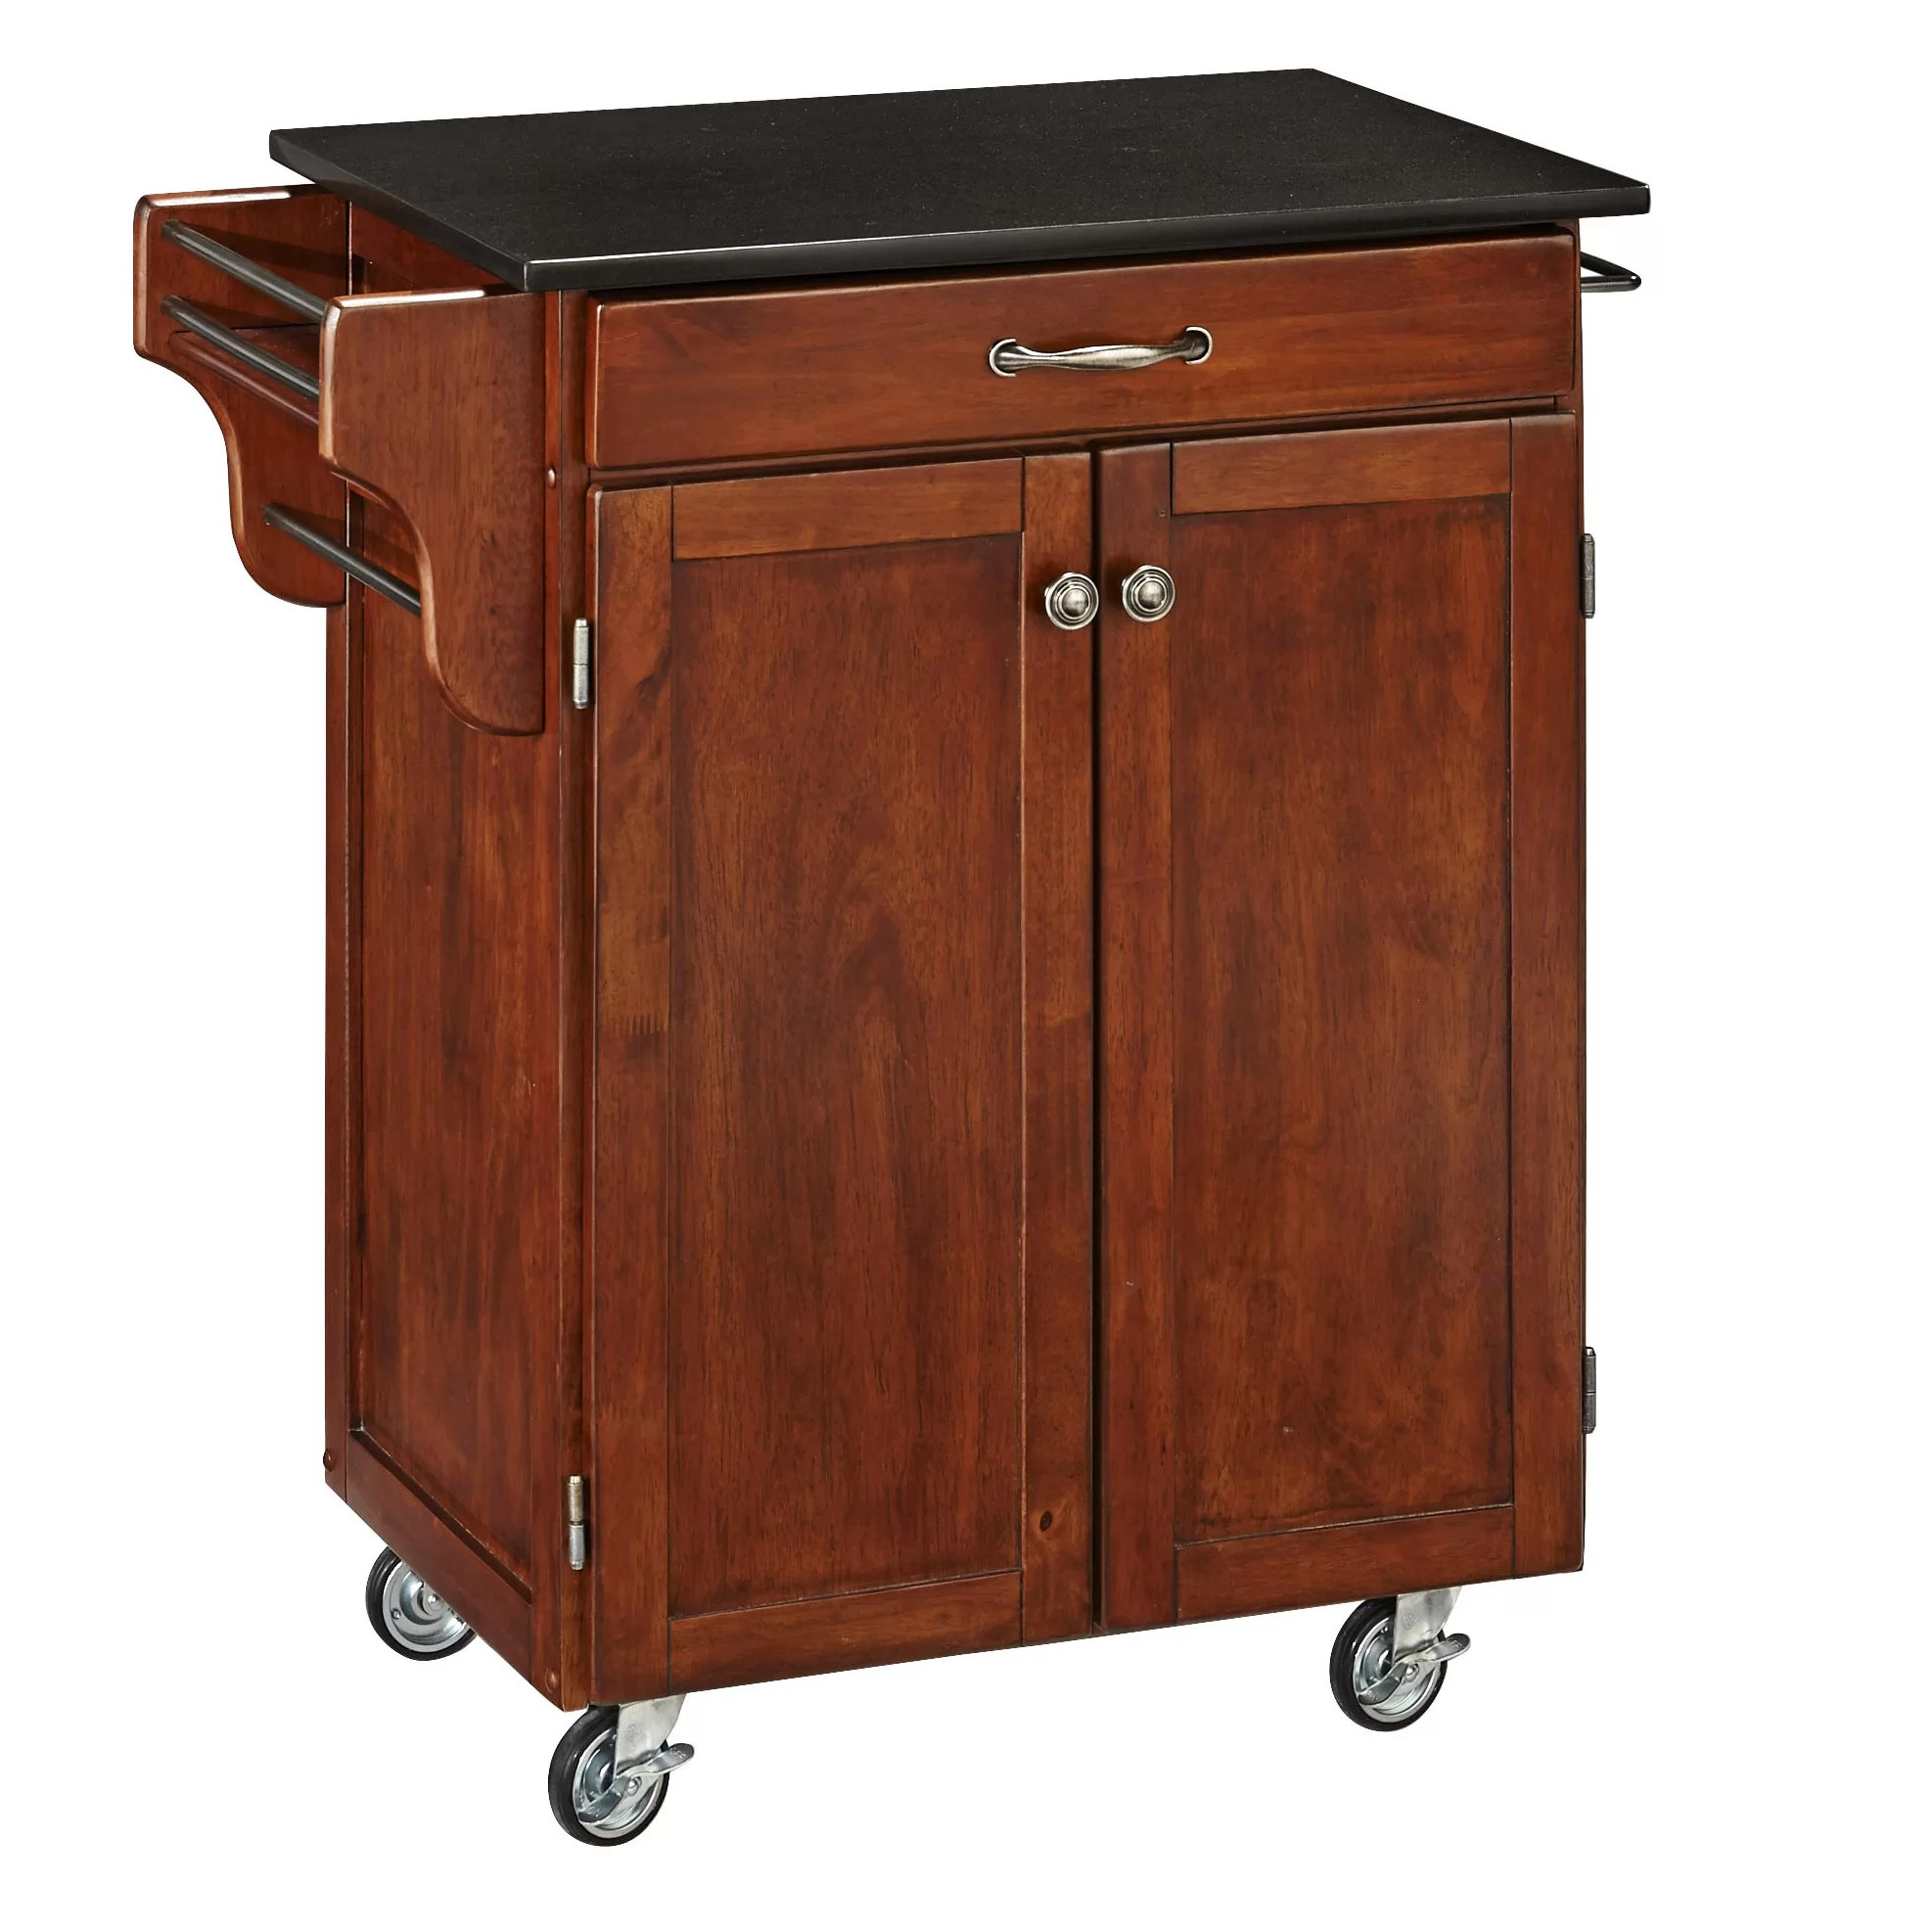 marble top kitchen cart hotels with full kitchens in orlando florida august grove savorey granite